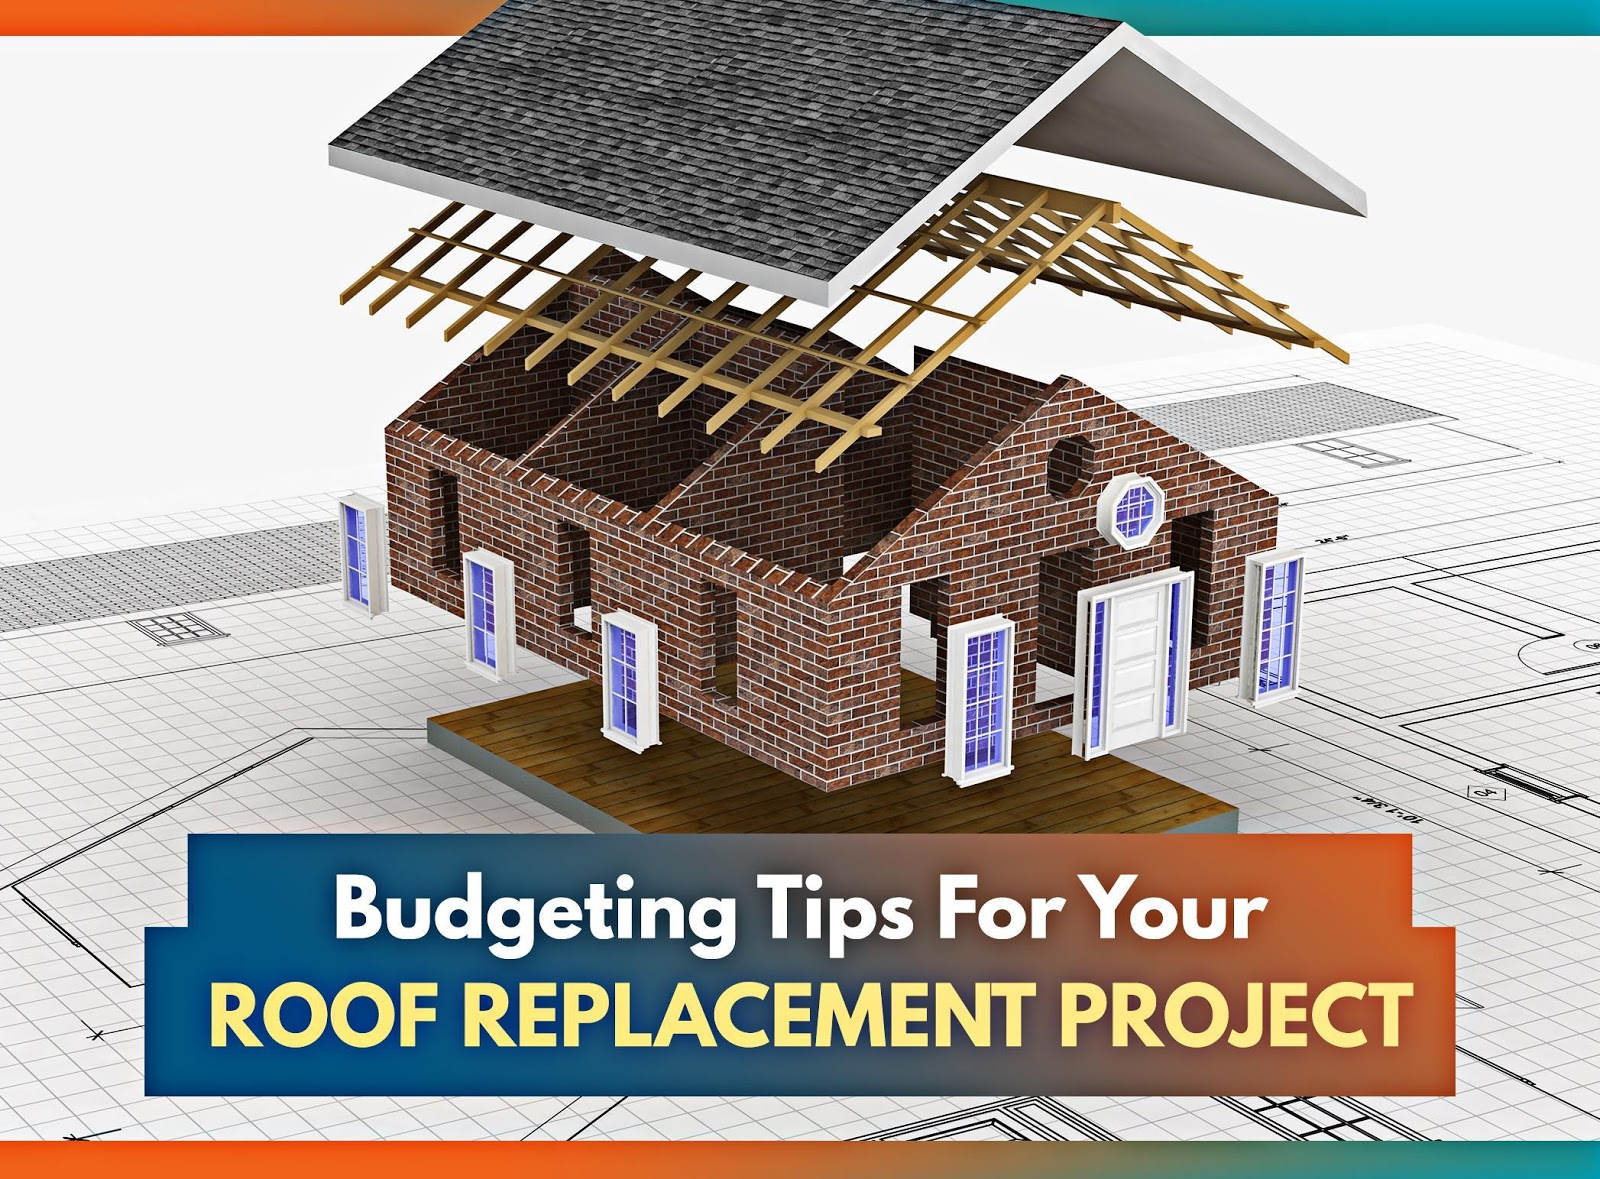 Budgeting Tips for Your Roof Replacement Project